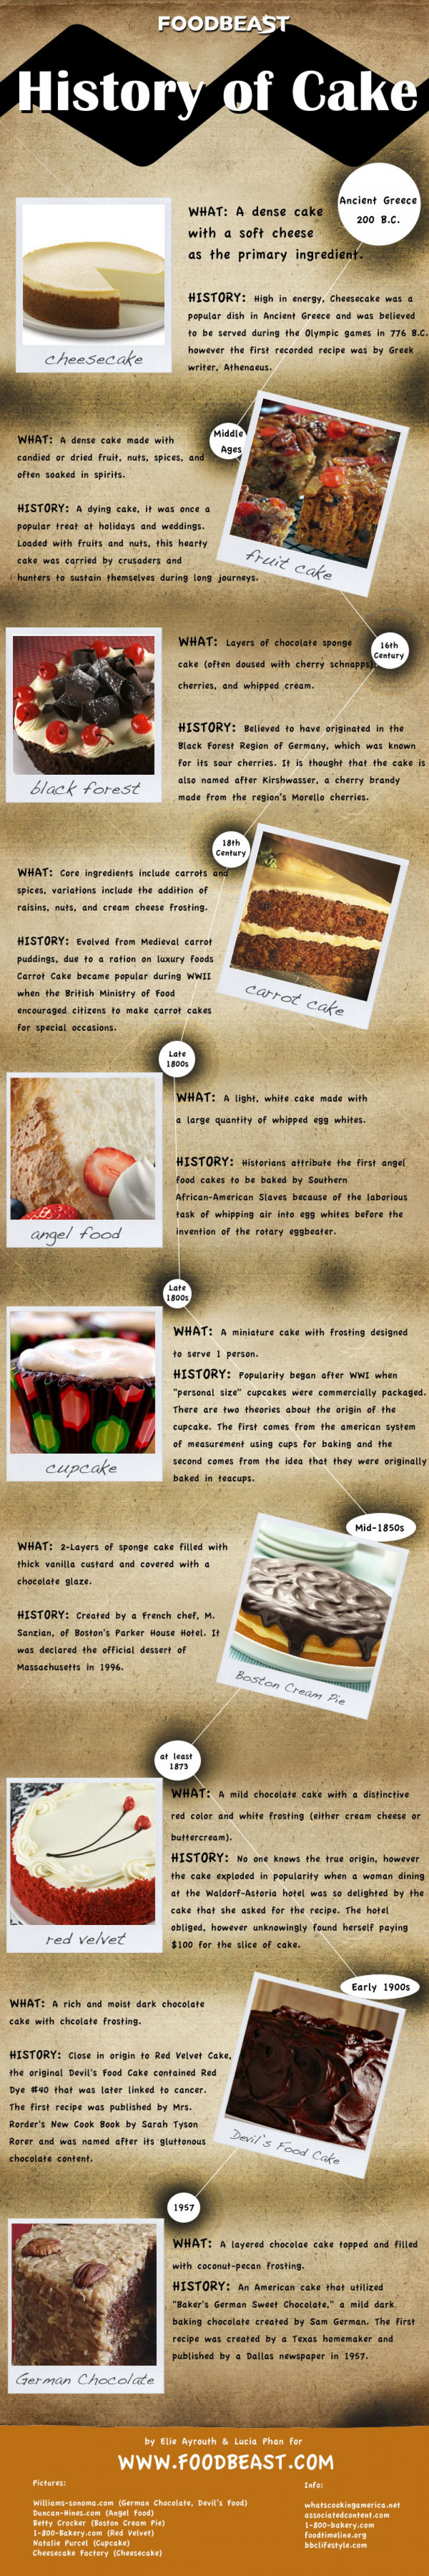 Happy National Cake Day! - History of Cake